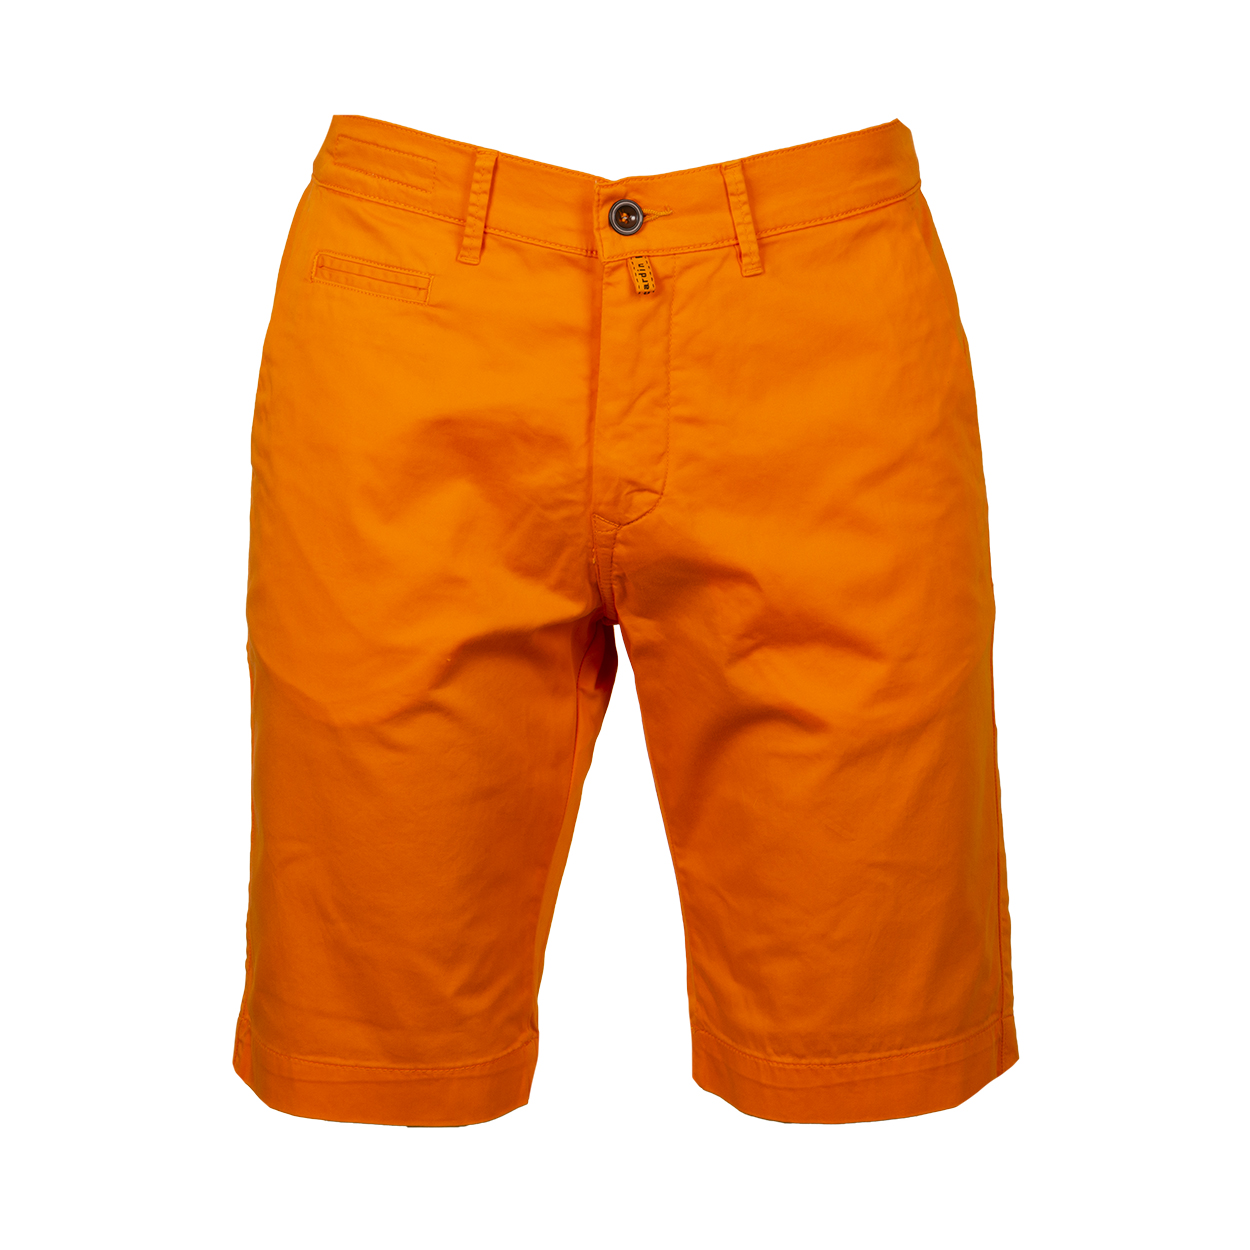 Short chino  en coton orange